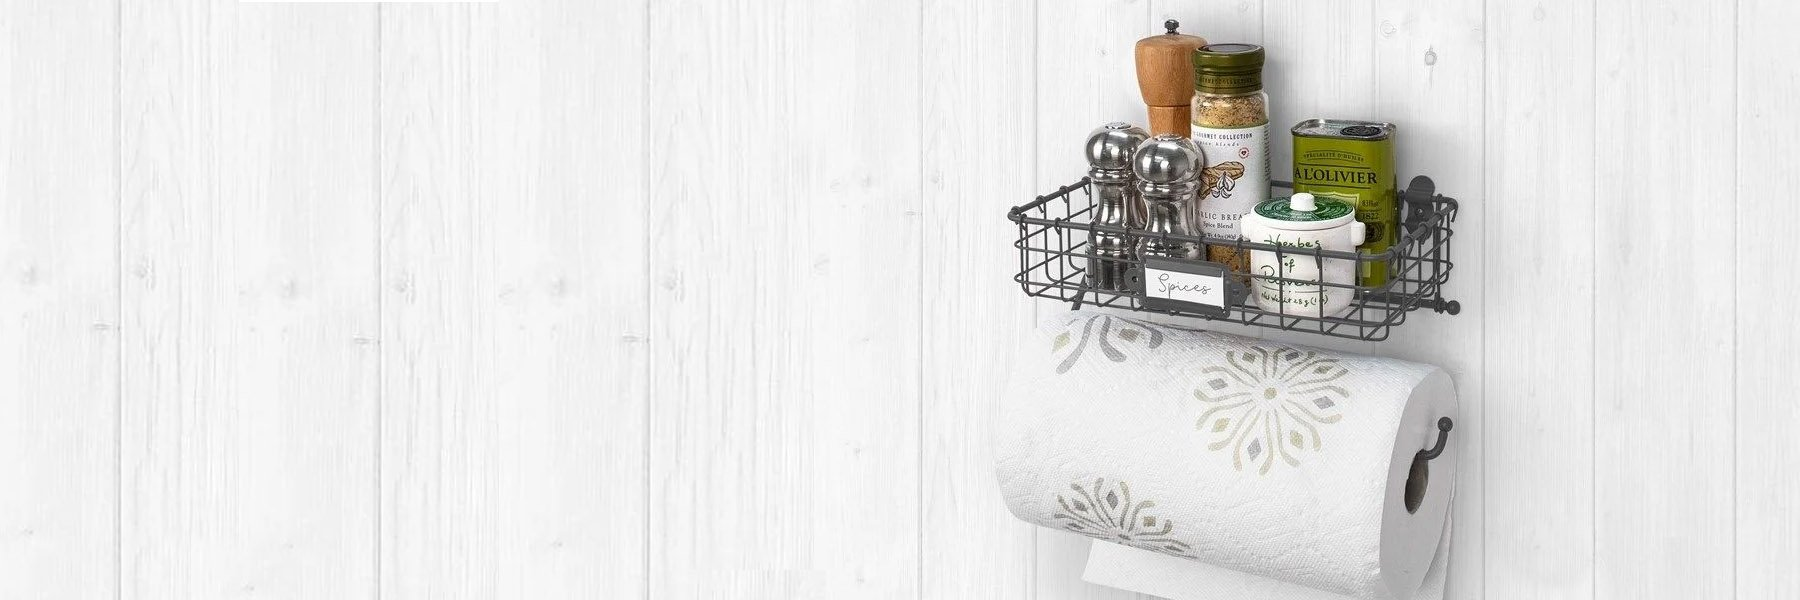 Photo of wall organizer with spices and napkin rack